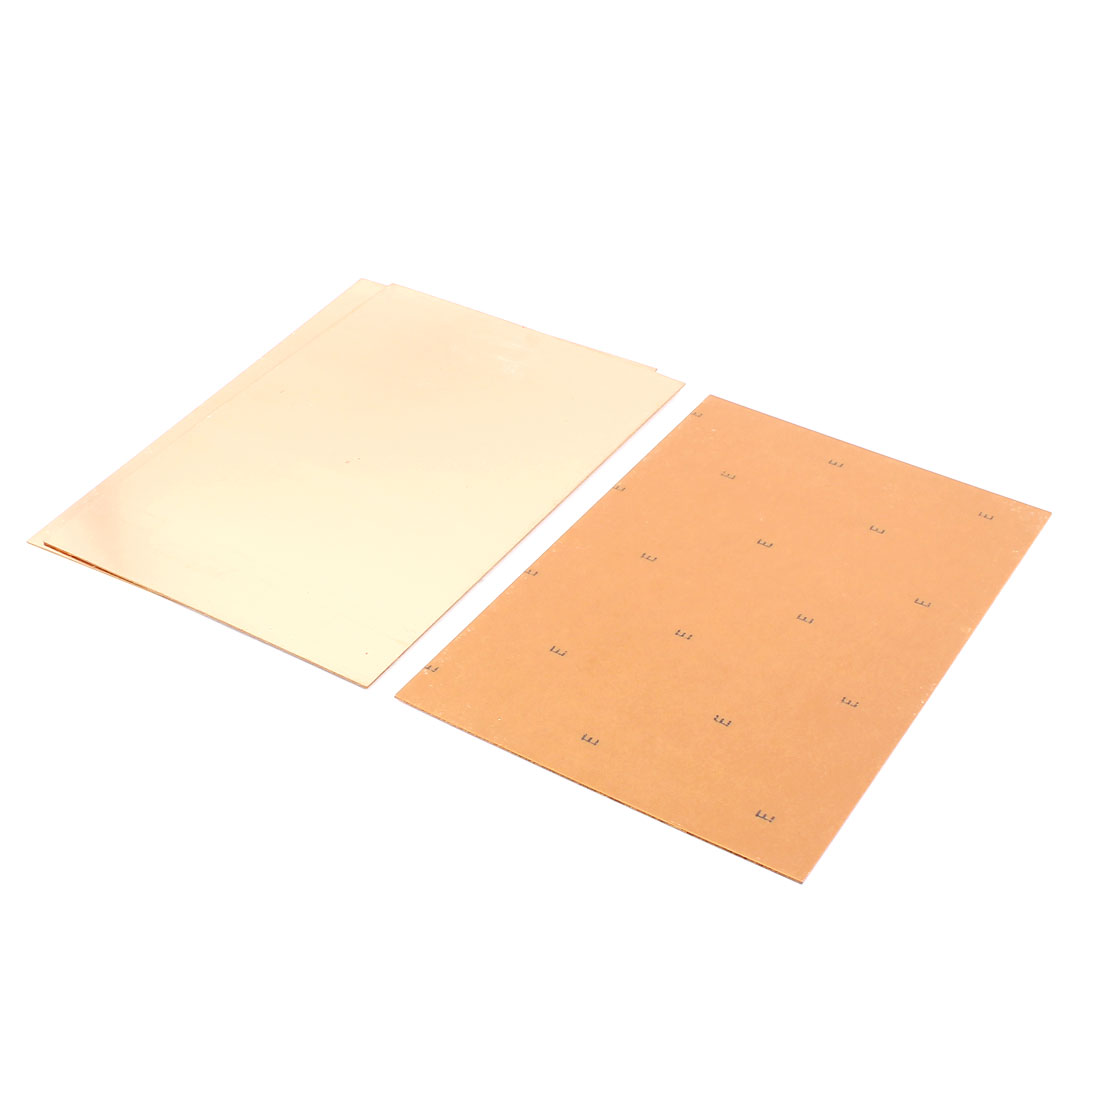 3pcs 20cm x 30cm Single Side Stable PCB Copper Clad Laminate Board FR4